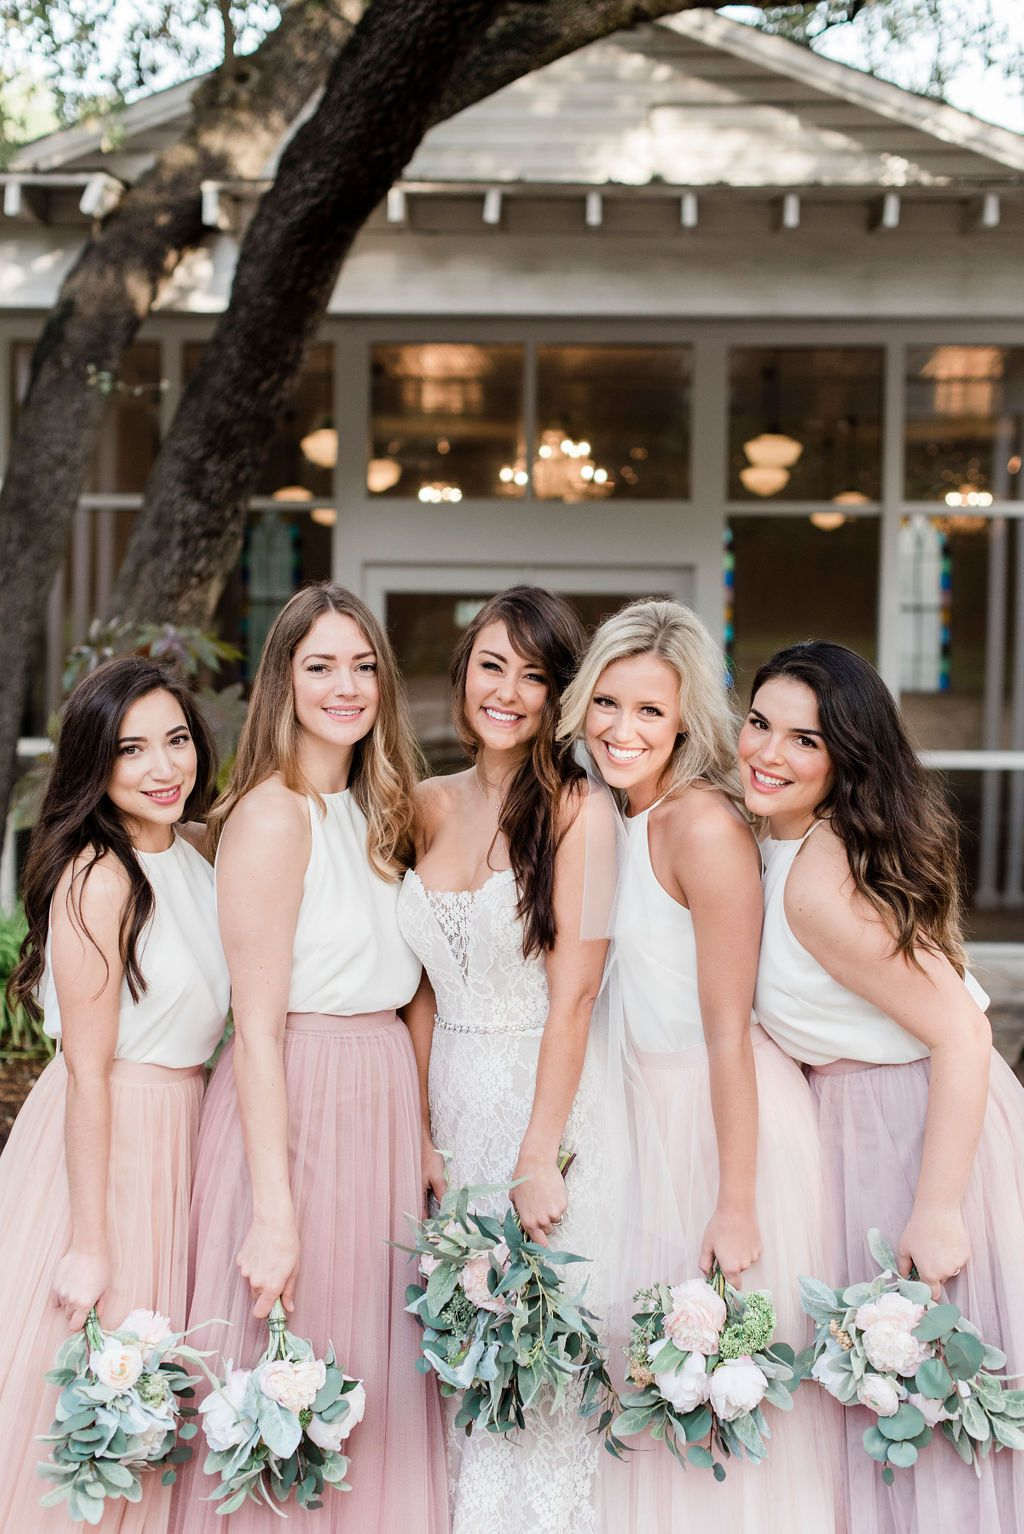 Tulle Bridesmaid Skirts Paired With Chiffon Lace Or Sequin Tops Go Great With A White Bridesmaid Dresses Lace Beach Bridesmaid Dresses Bridesmaid Dresses Boho